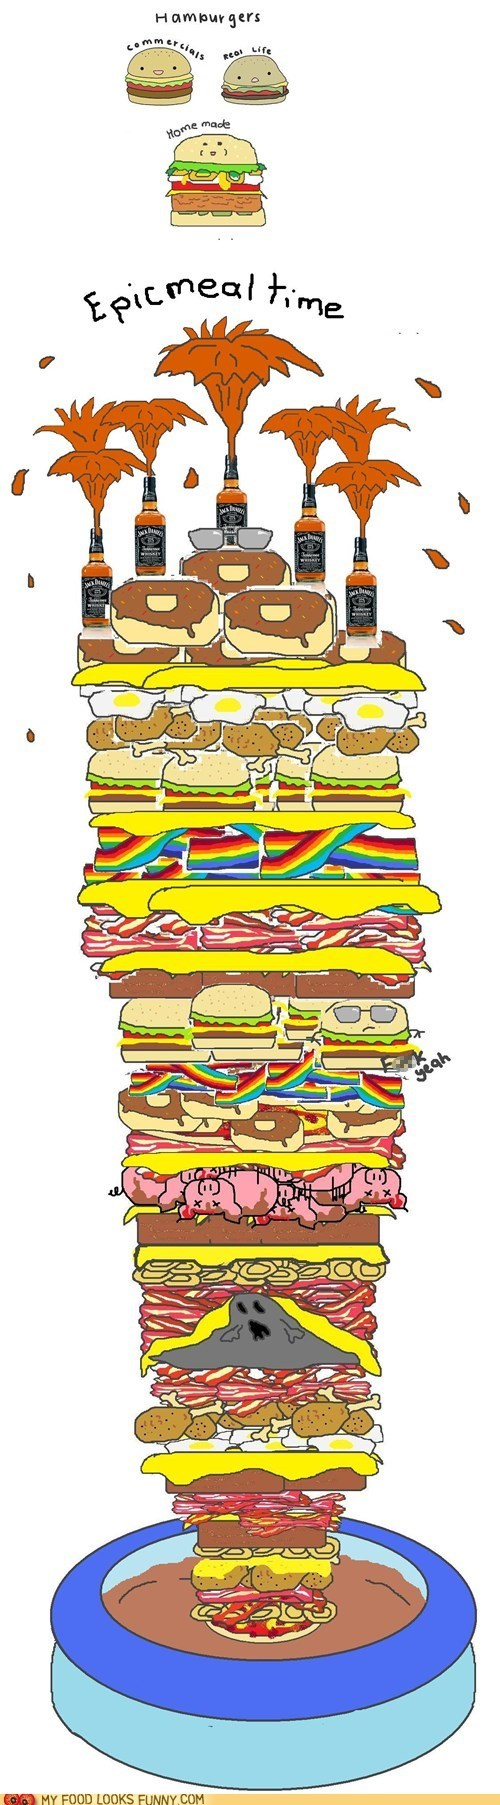 best of the week burgers epic meal time hamburgers taxonomy types - 5653038848